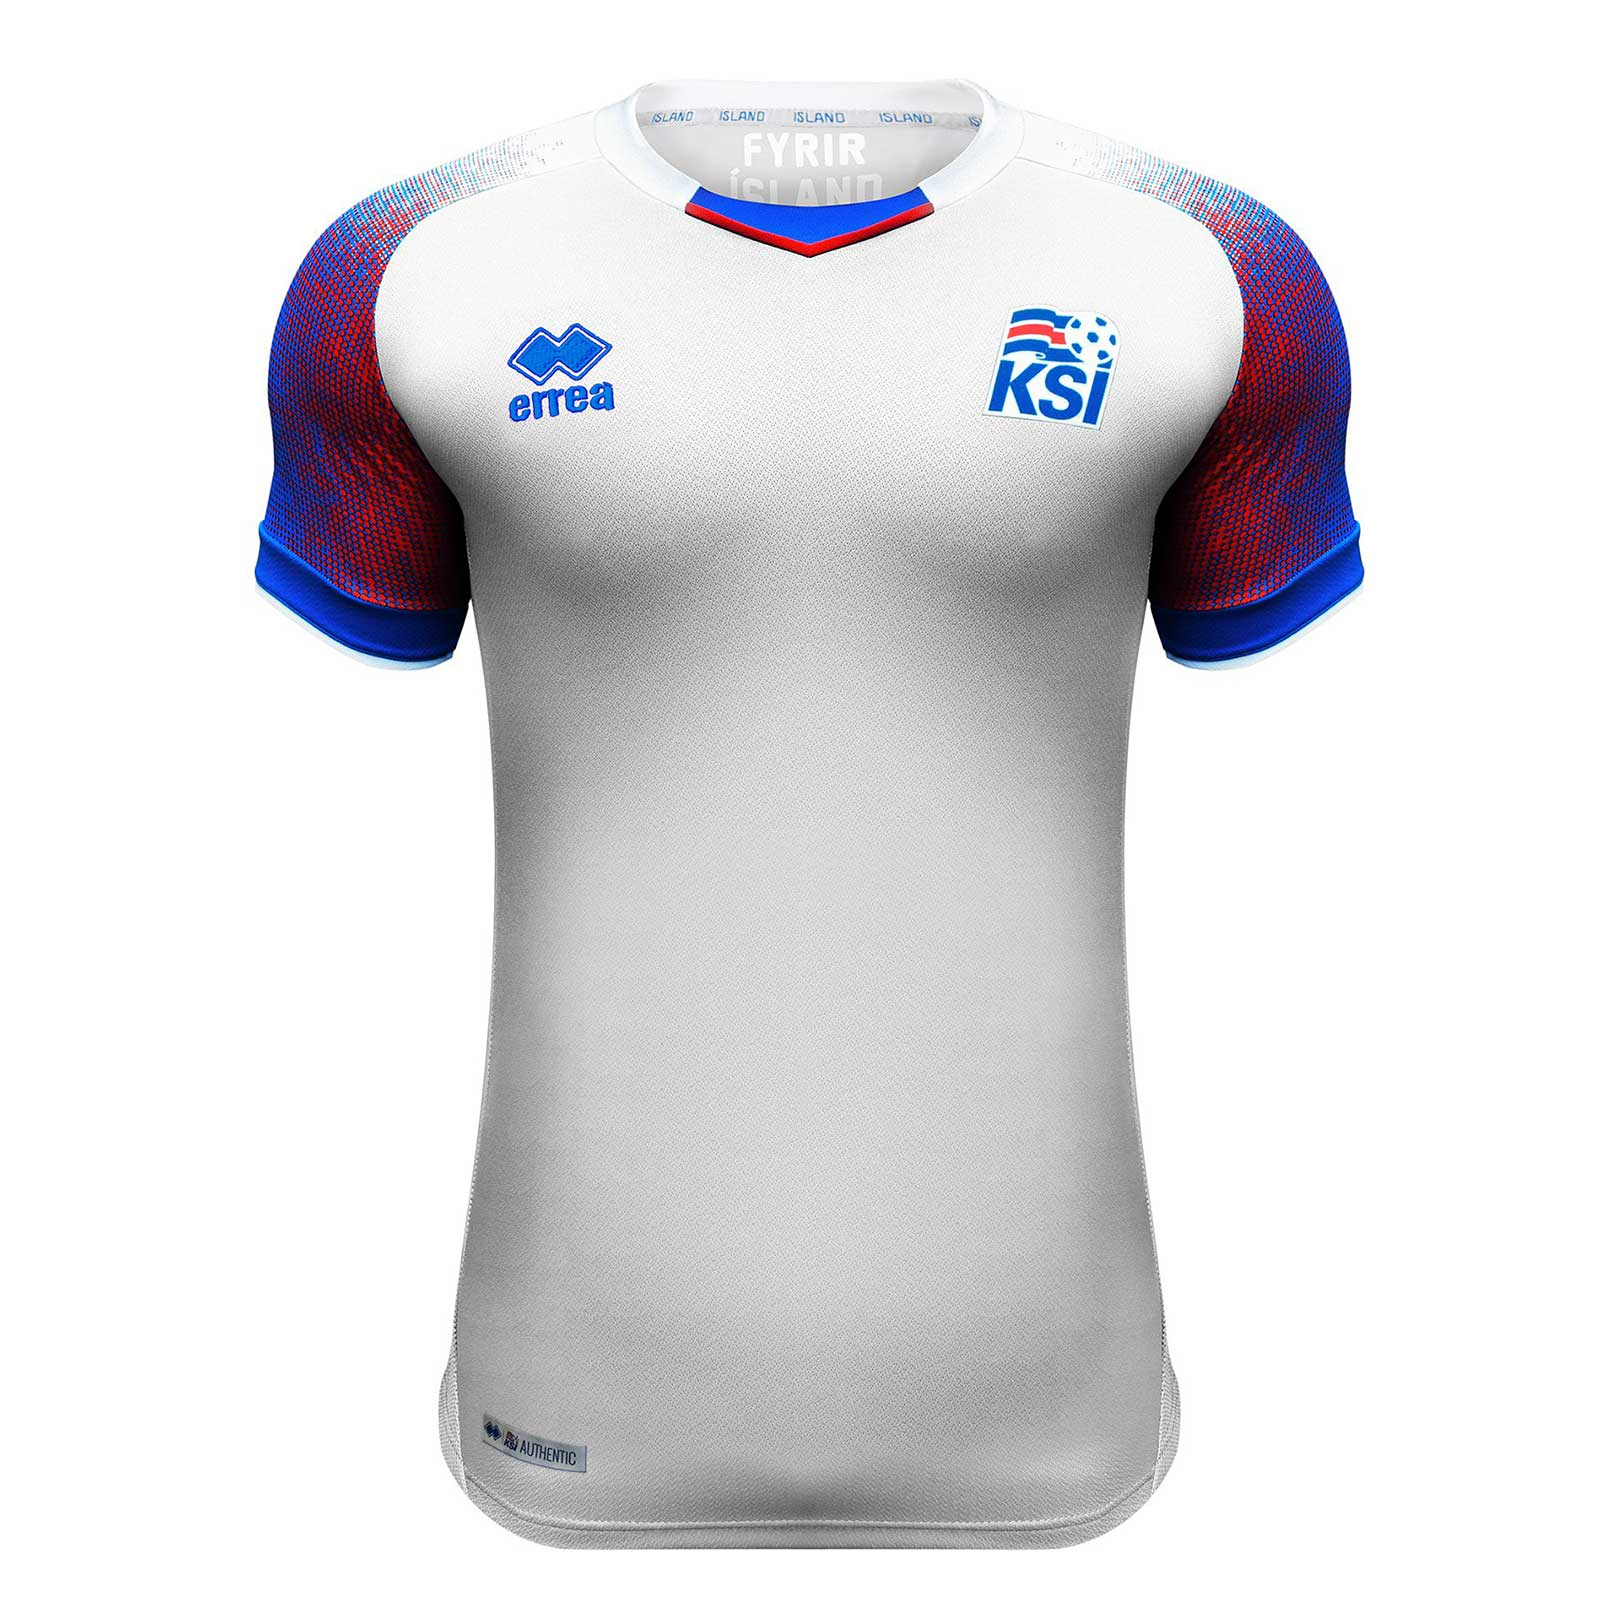 Iceland 2018 FIFA World Cup Away Shirt Soccer Jersey White